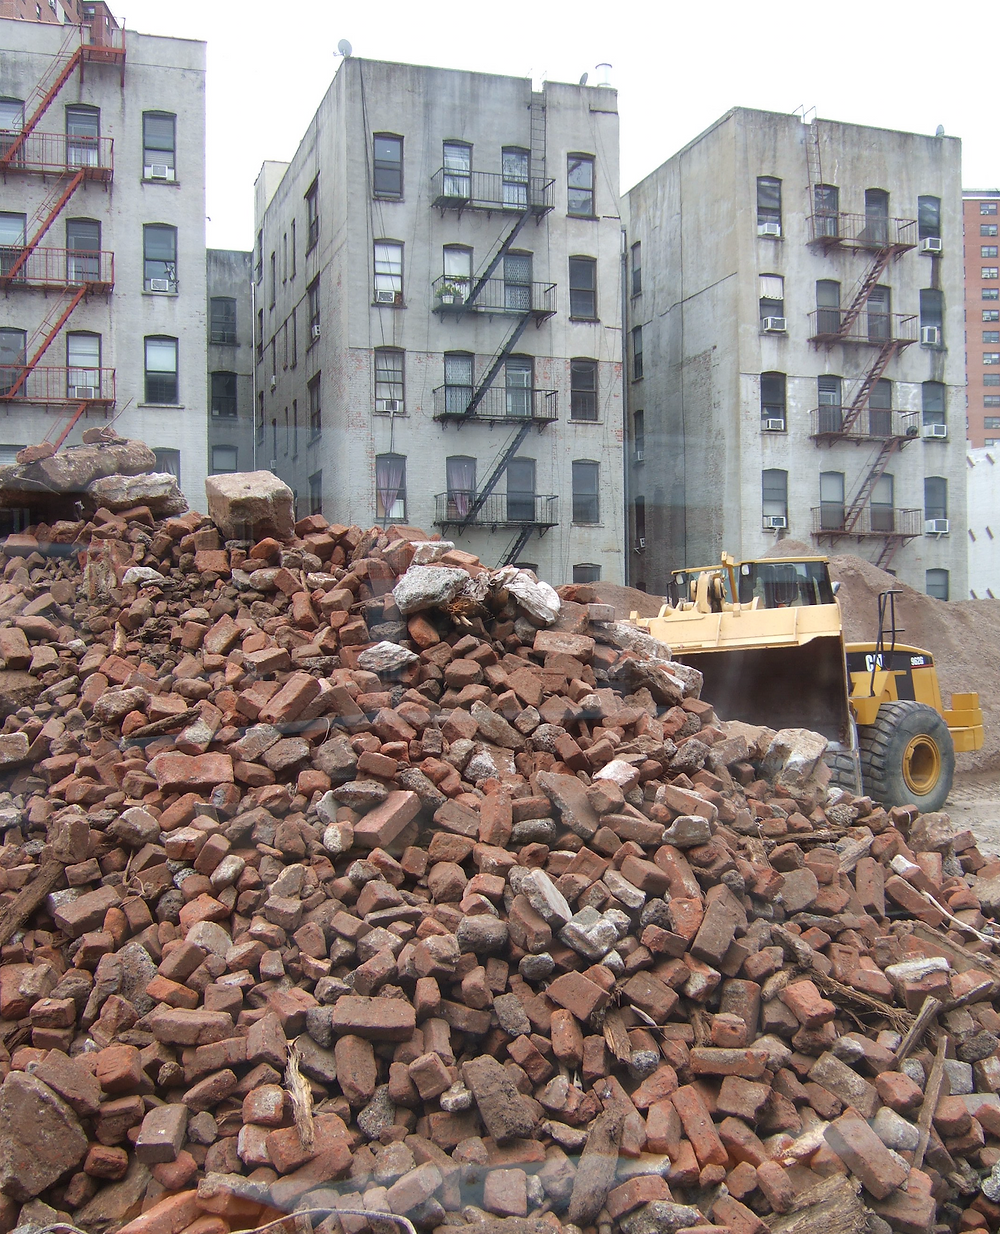 The site of the future Taystee Building in the Manhattanville Factory District